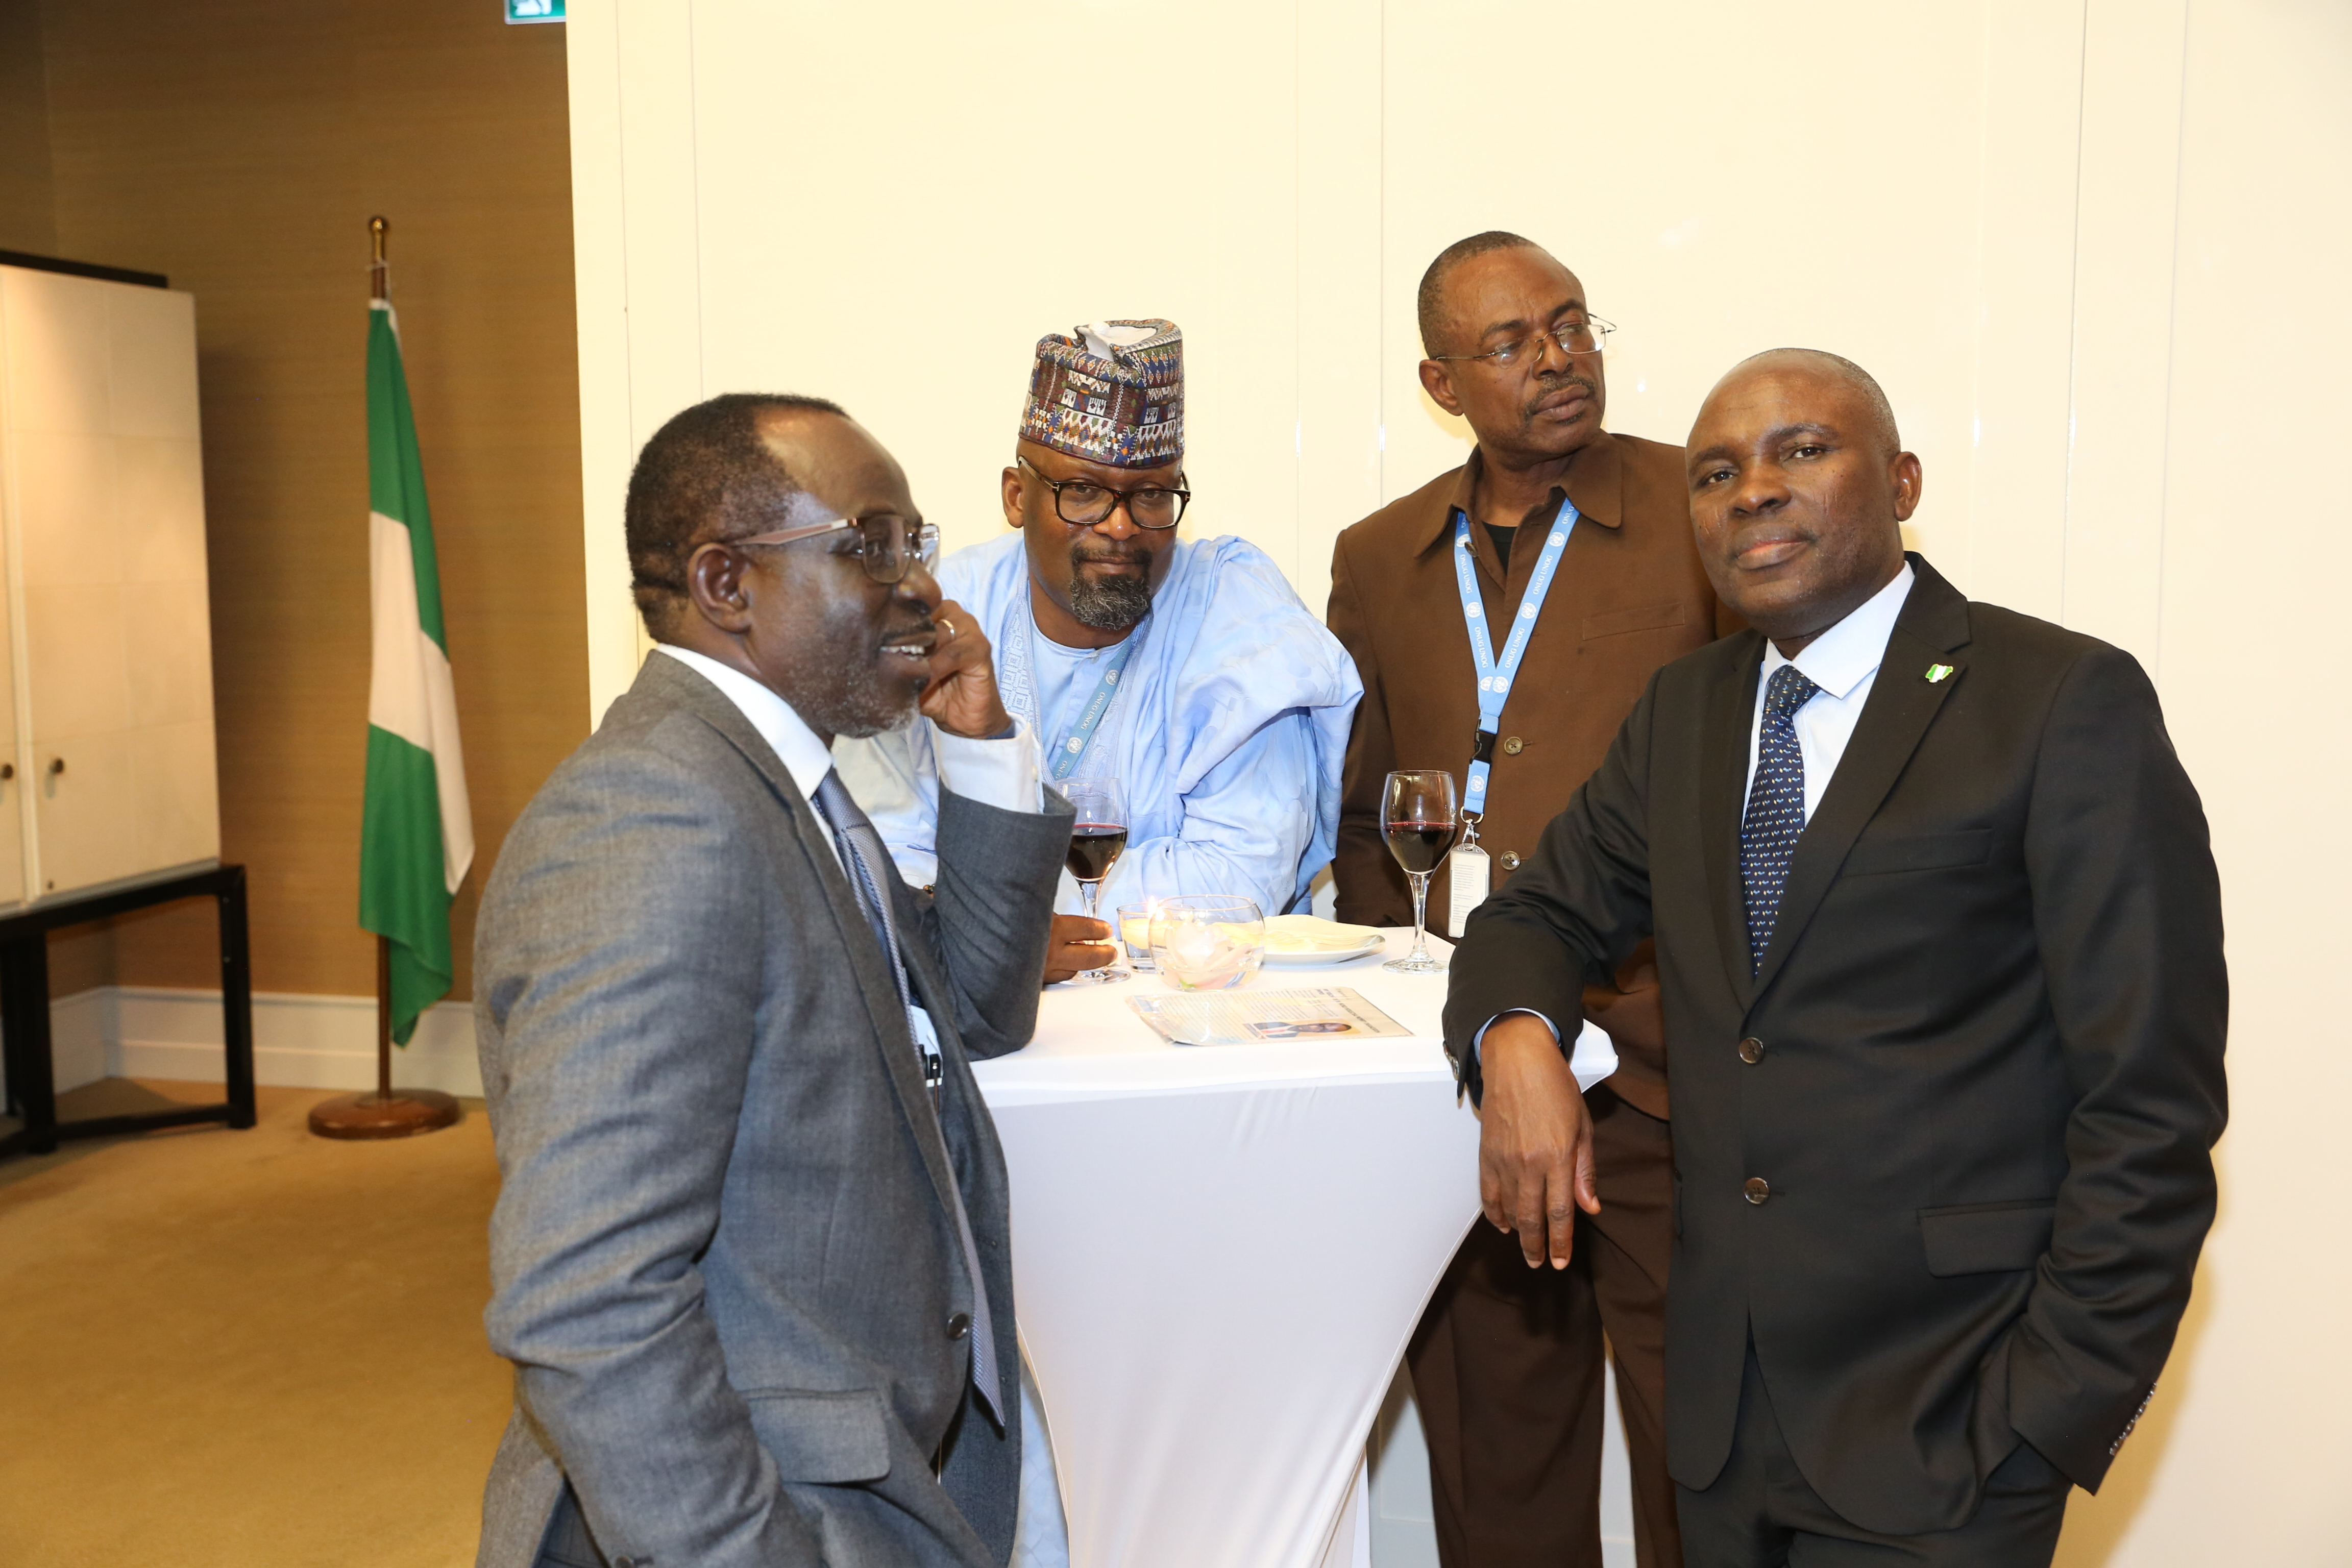 RECEPTION/PRENSENTATION OF PROF. ADEBAMBO ADEWOP, AS NIGERIA'S CANDIDATE TO THE POST OF DIRECTOR-GENERAL, WIPO.